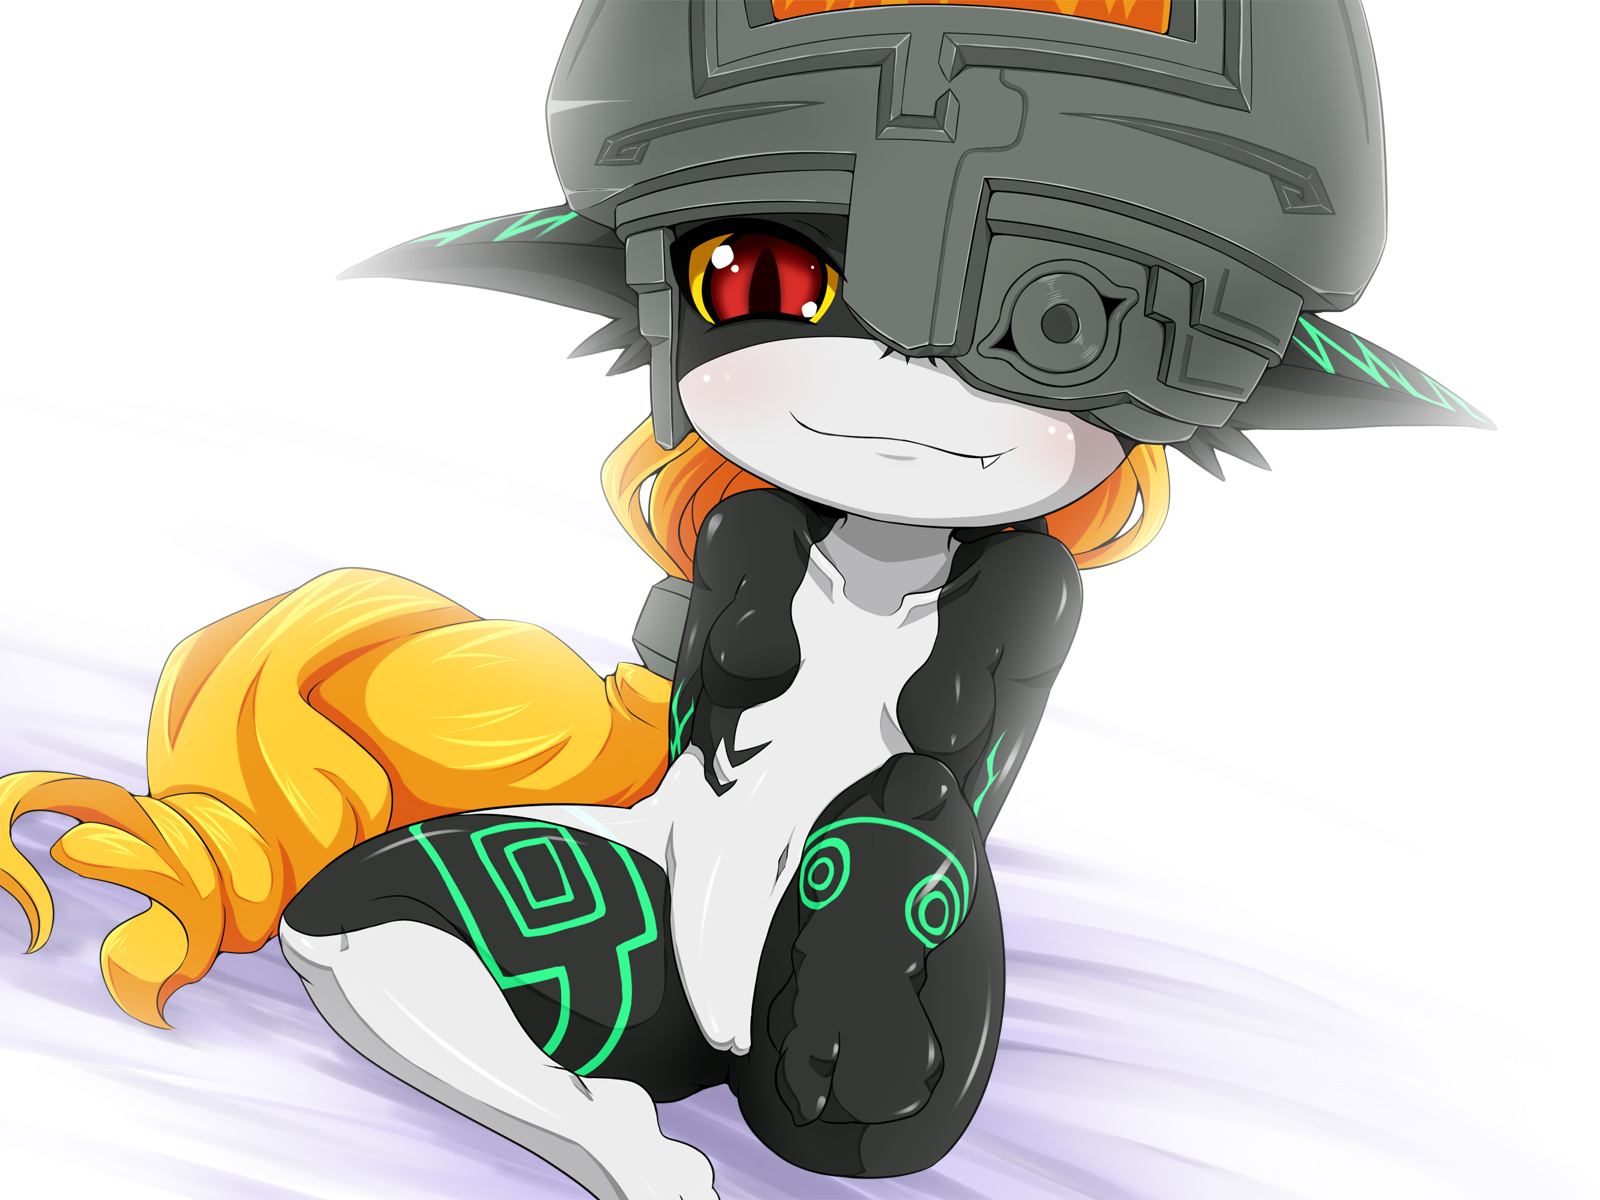 e621 blush breasts chloroplast female hi_res humanoid looking_at_viewer midna nintendo not_furry nude pussy red_eyes simple_background sitting solo the_legend_of_zelda twilight_princess video_games